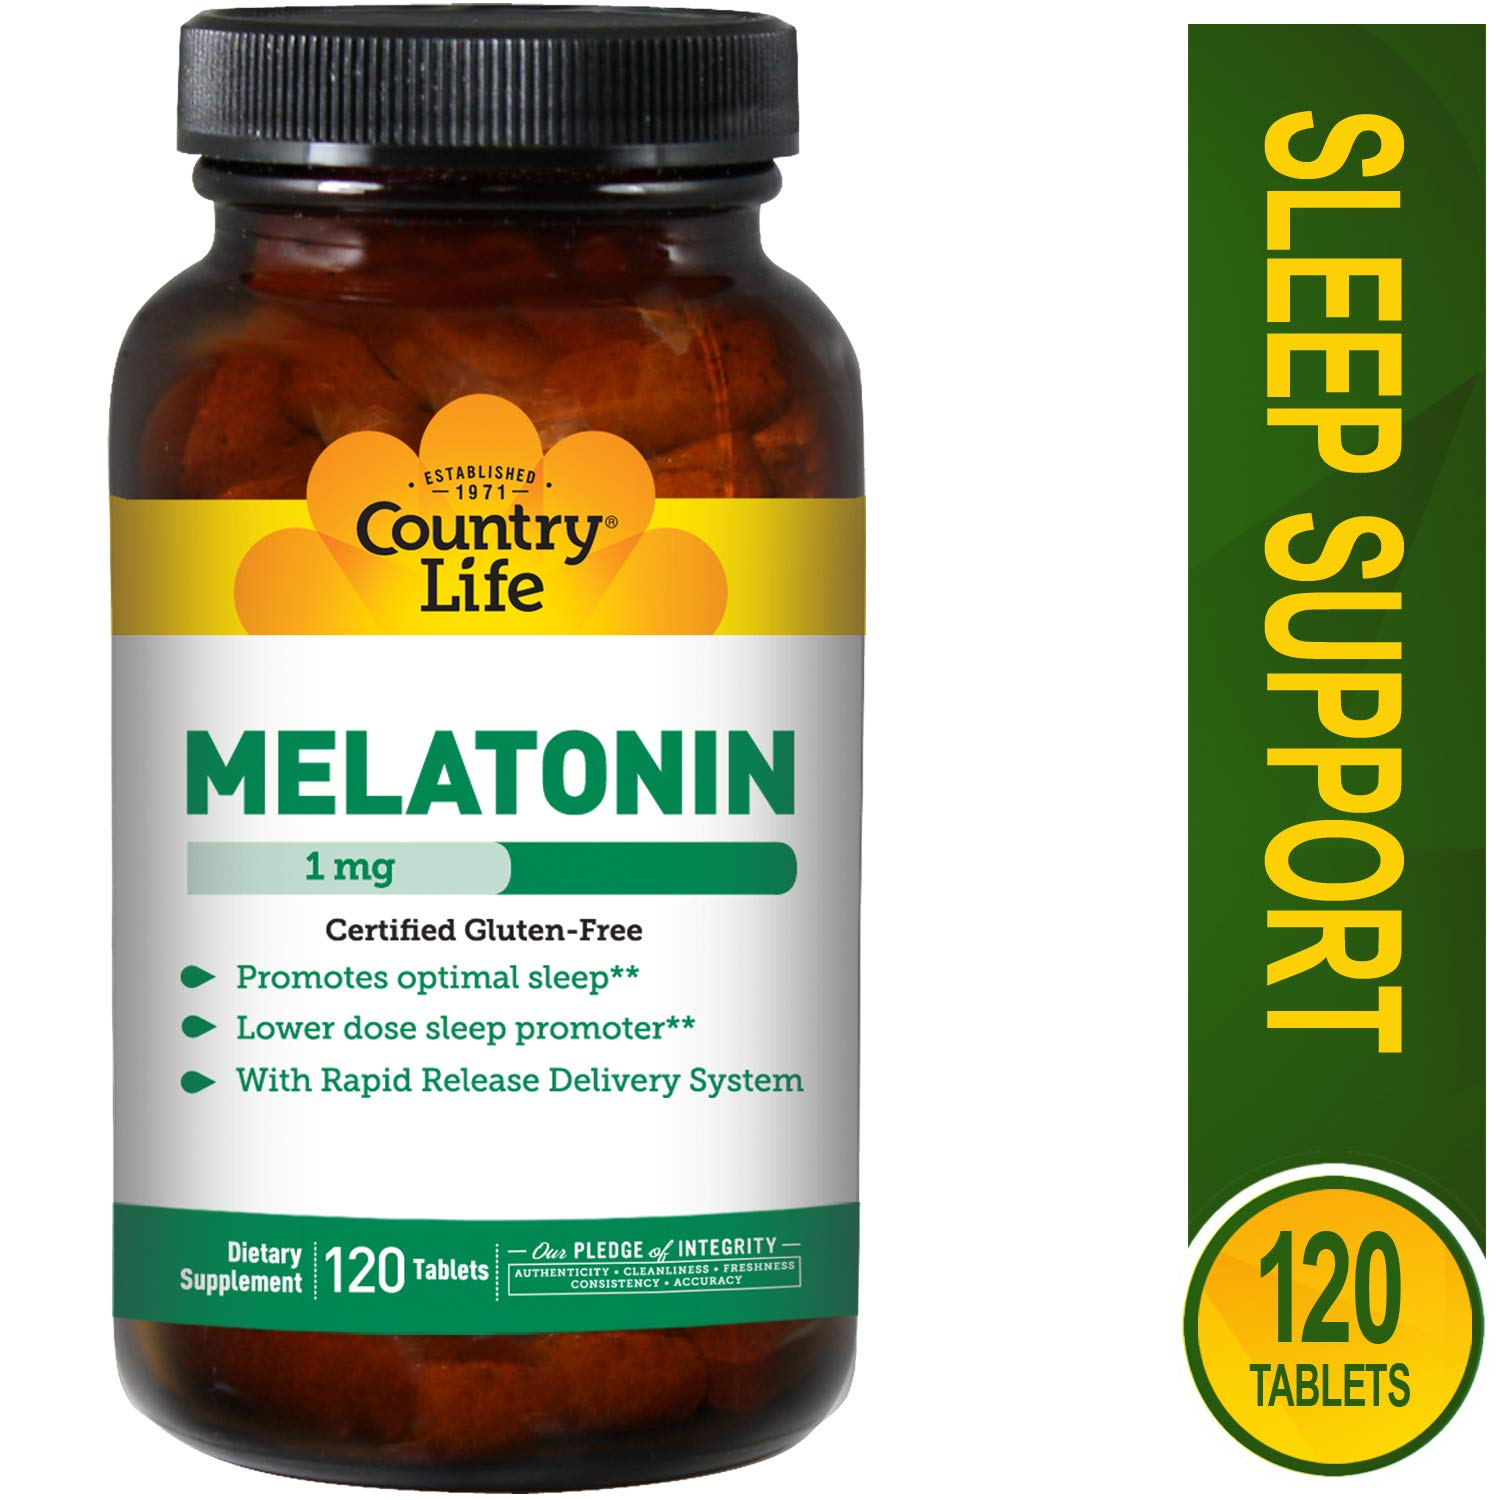 Amazon.com: Country Life Melatonin 1 mg, 120 Tablets: Health & Personal Care